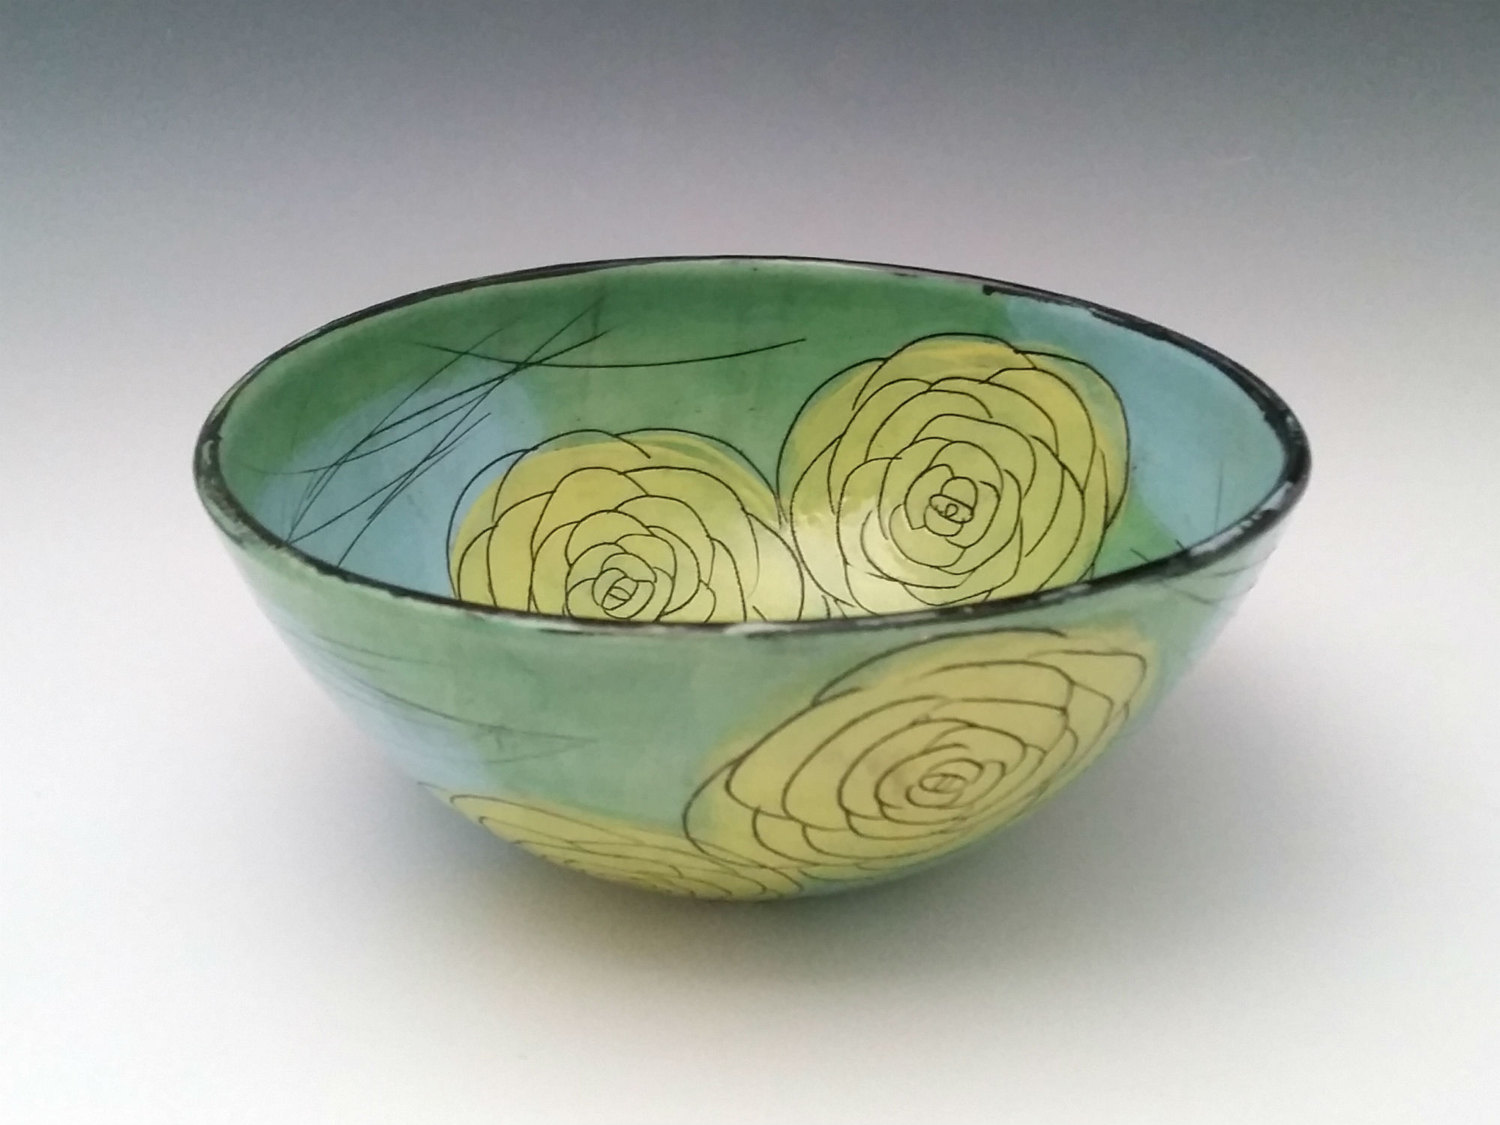 smith bowl rose 2 - ACGA